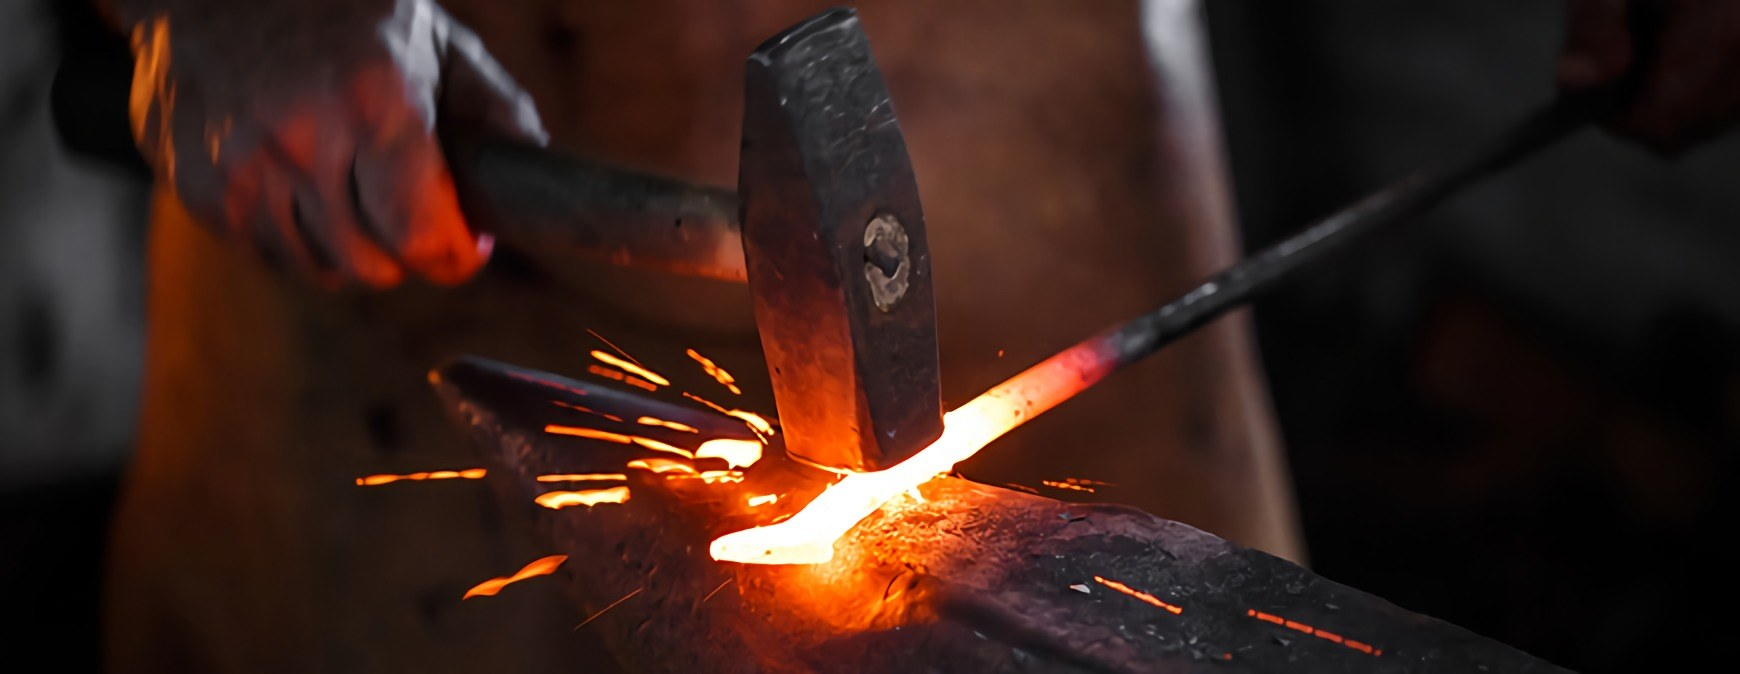 blacksmith iron working